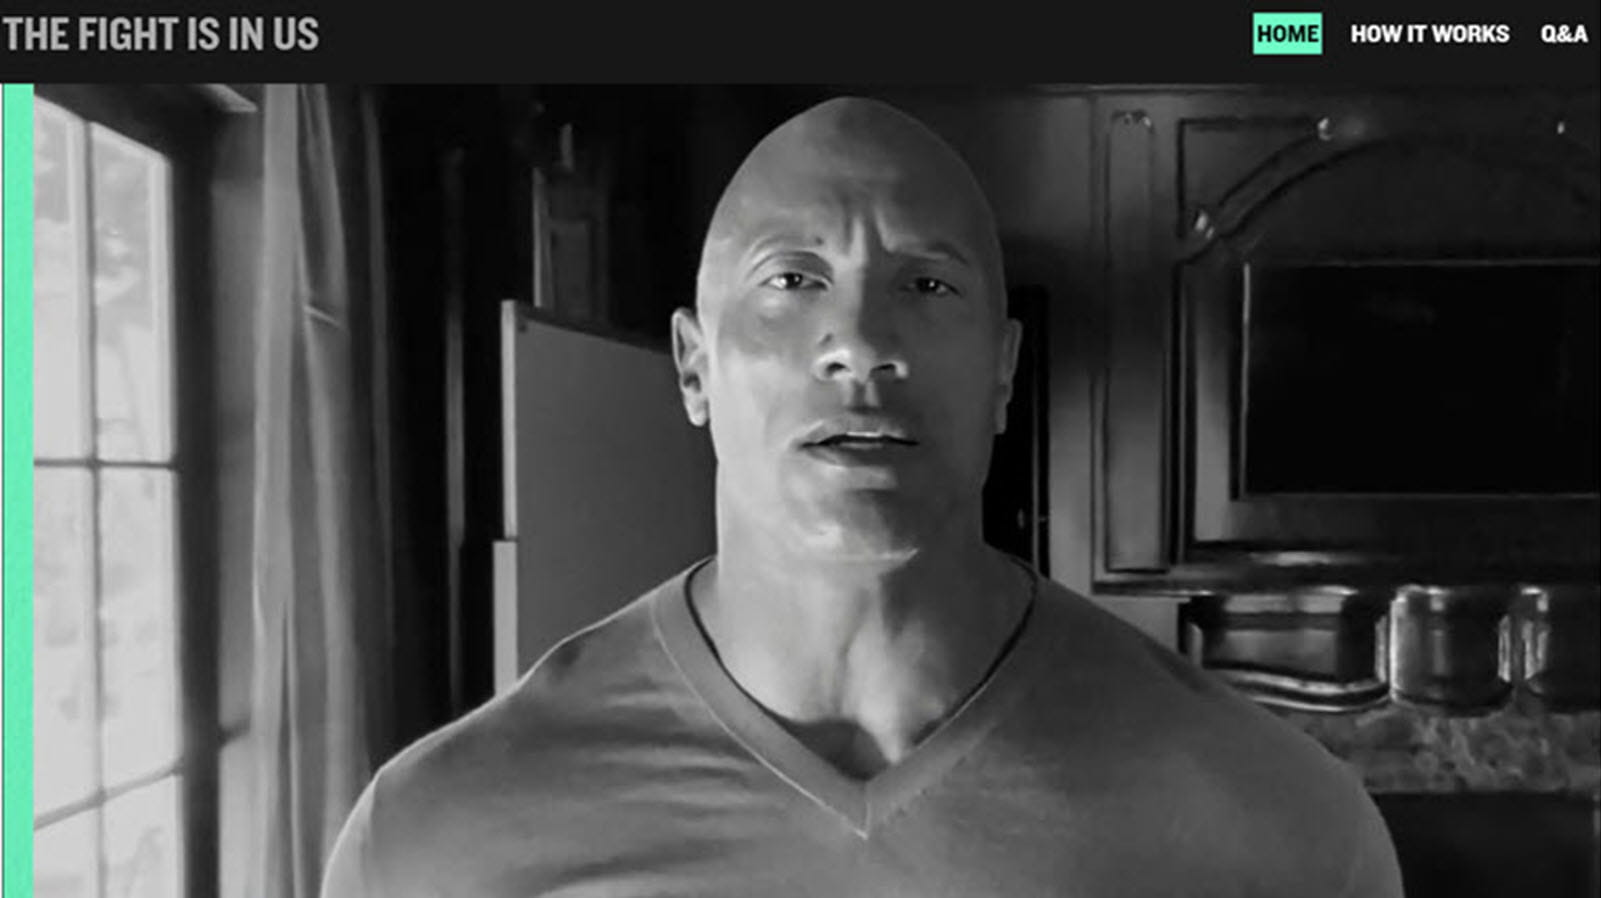 Dwayne The Rock Johnson in a YouTube video for the Fight Is In Us